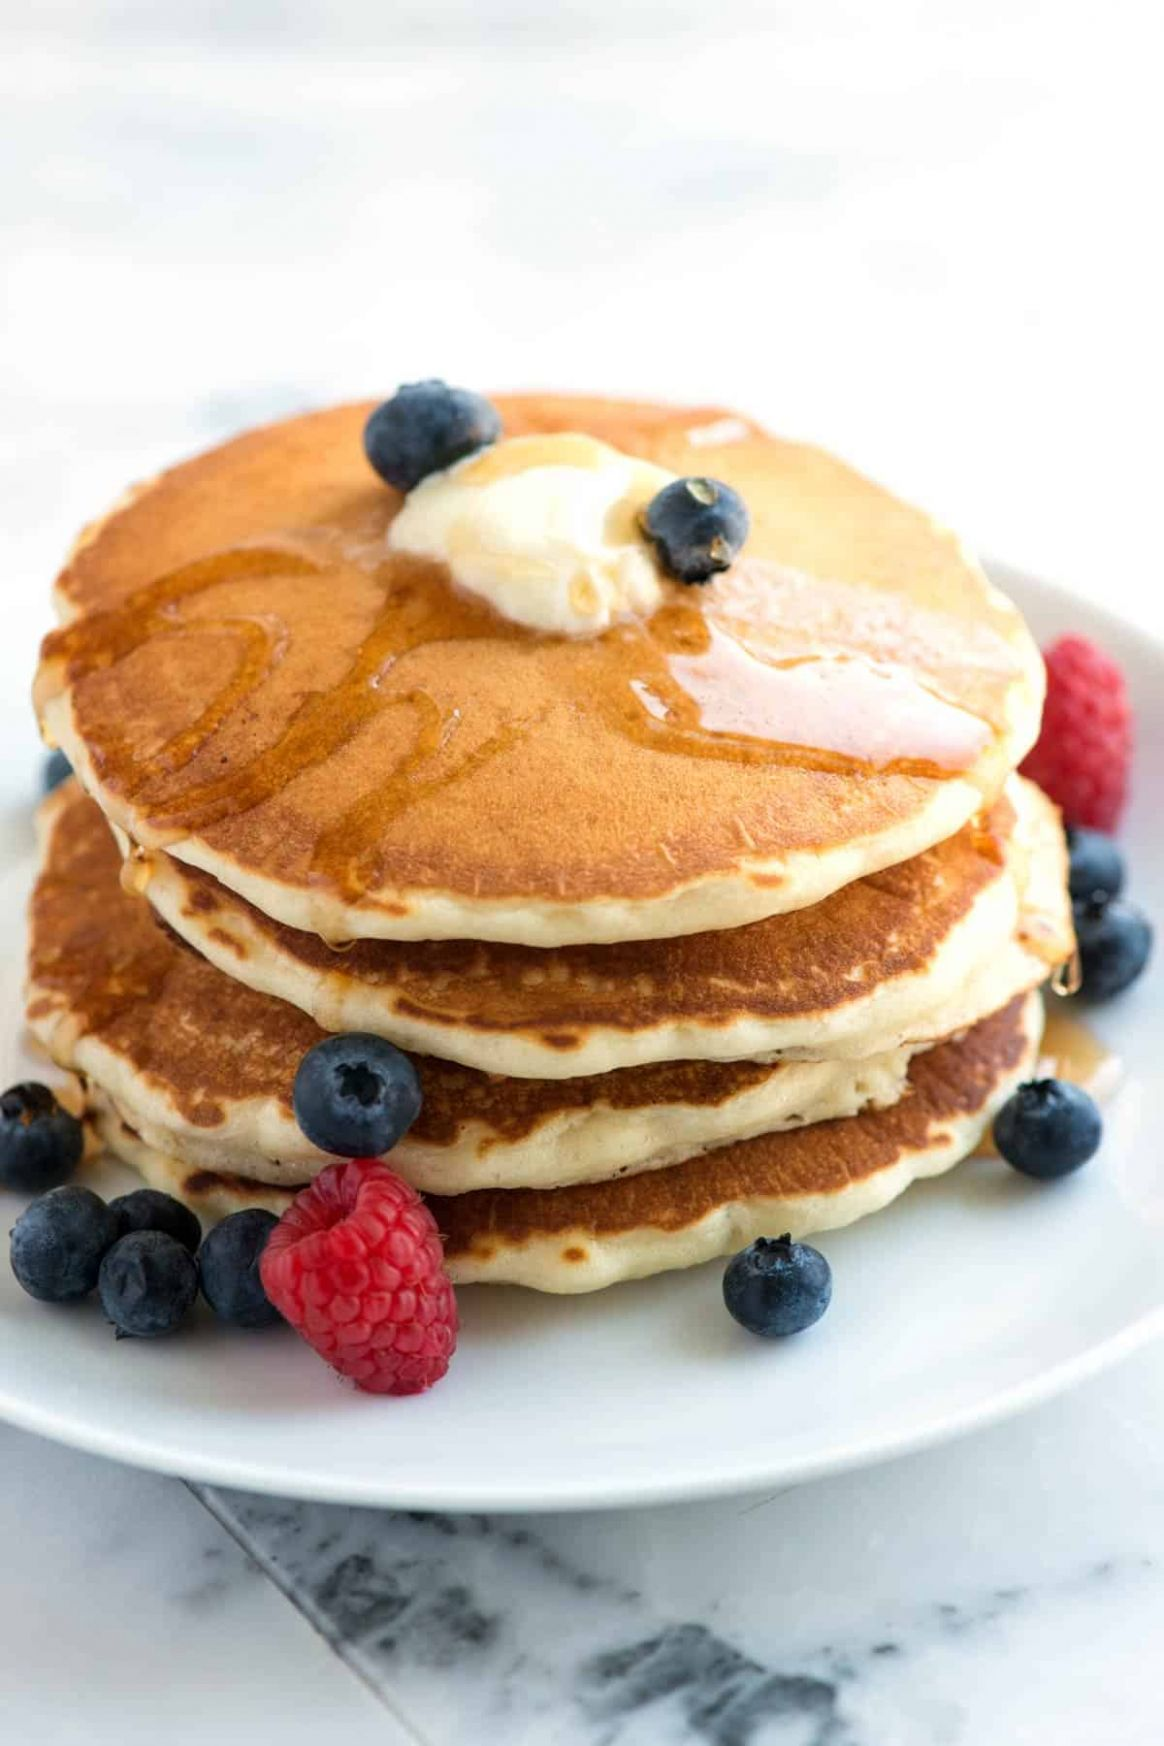 Easy Fluffy Pancakes from Scratch - Simple Recipes Pancakes